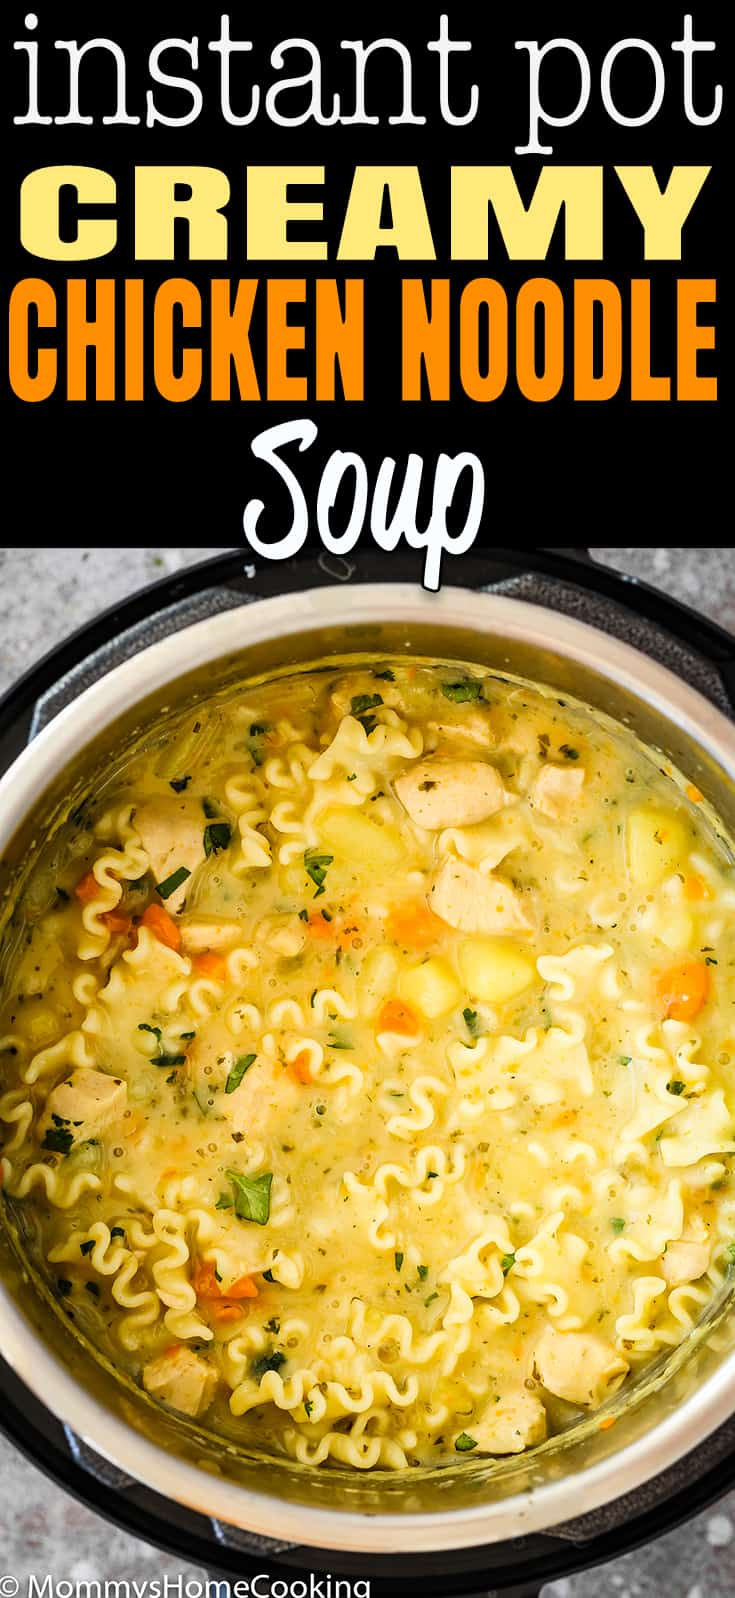 Instant Pot Creamy Chicken Noodle Soup recipe only takes 30 minutes to make, so you can have a comforting bowl of creamy delicious soup in a flash! It's made from scratch, so it is rich, delicious, and totally comforting. An instant pick-me-up for sure! #recipe #instantpot #soup #chicken #creamy #winter #easy #dinner #noodle